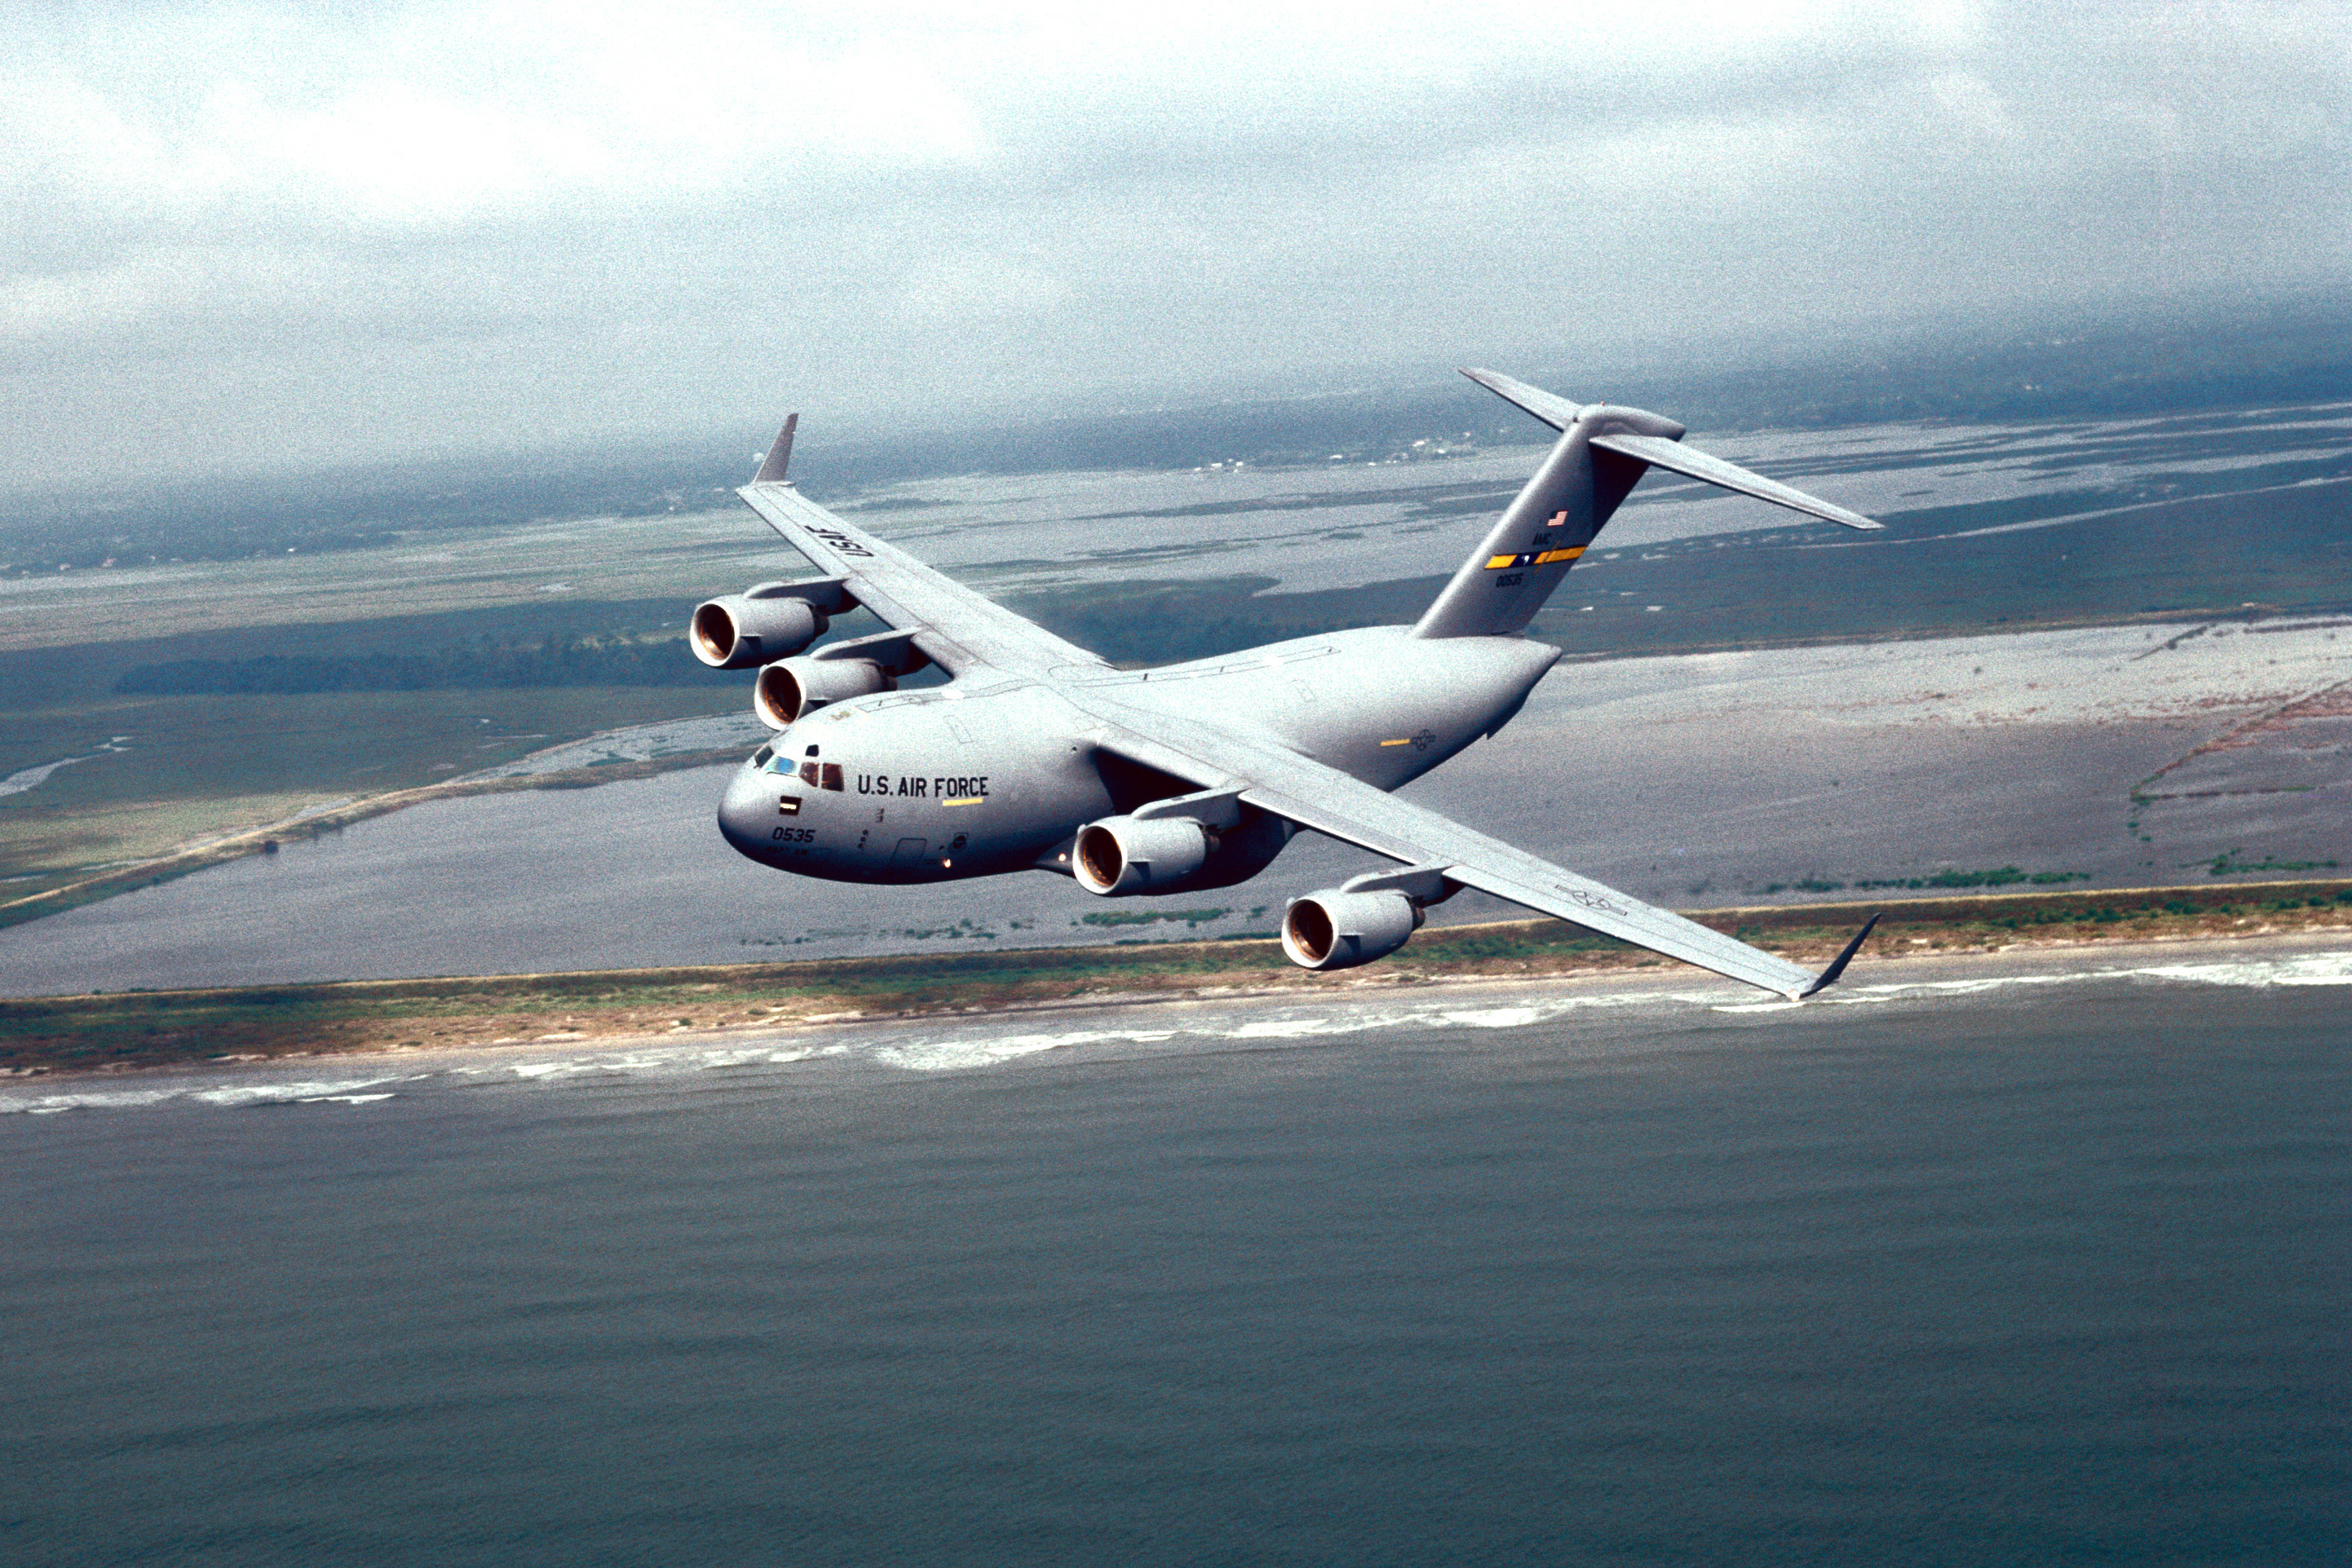 File An Air To Air Left Side View Of A C 17 Globemaster Iii From The